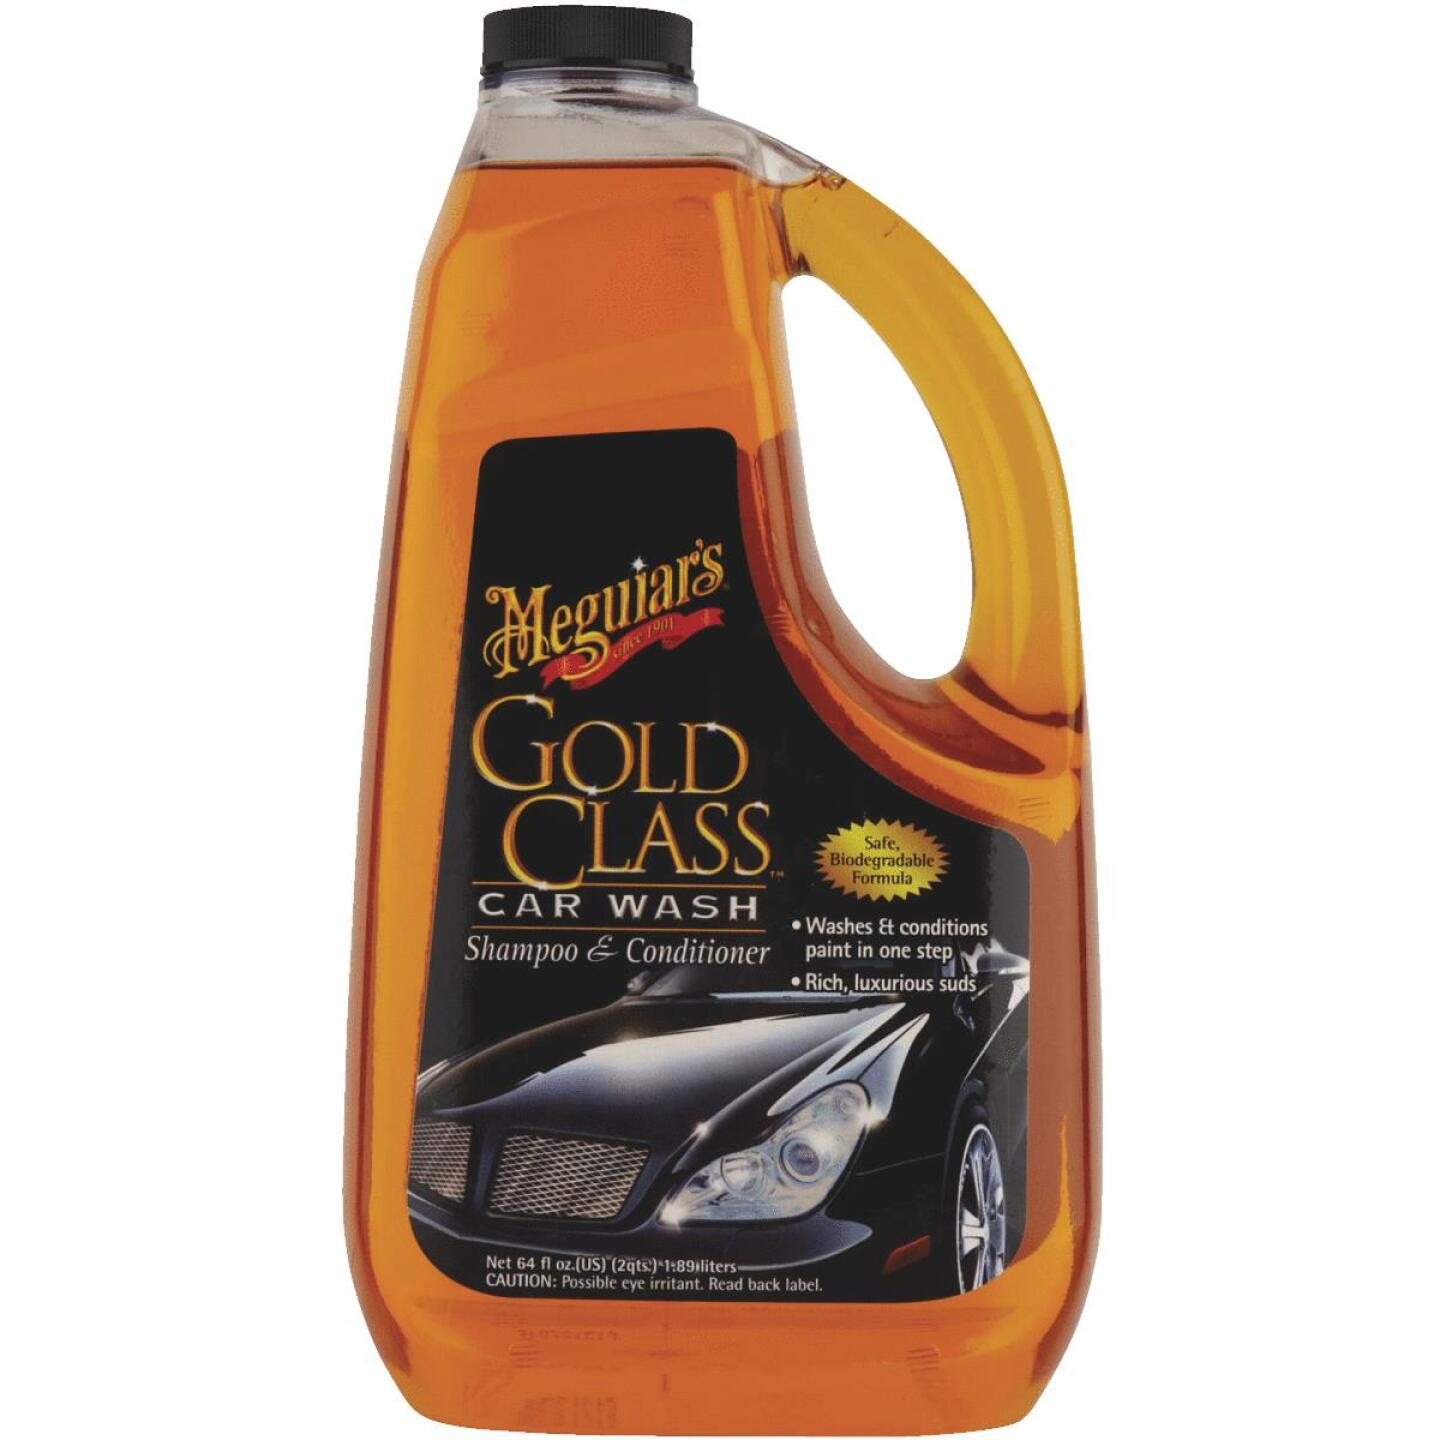 Meguiars 64 Oz. Liquid Gold Class Car Wash Image 2